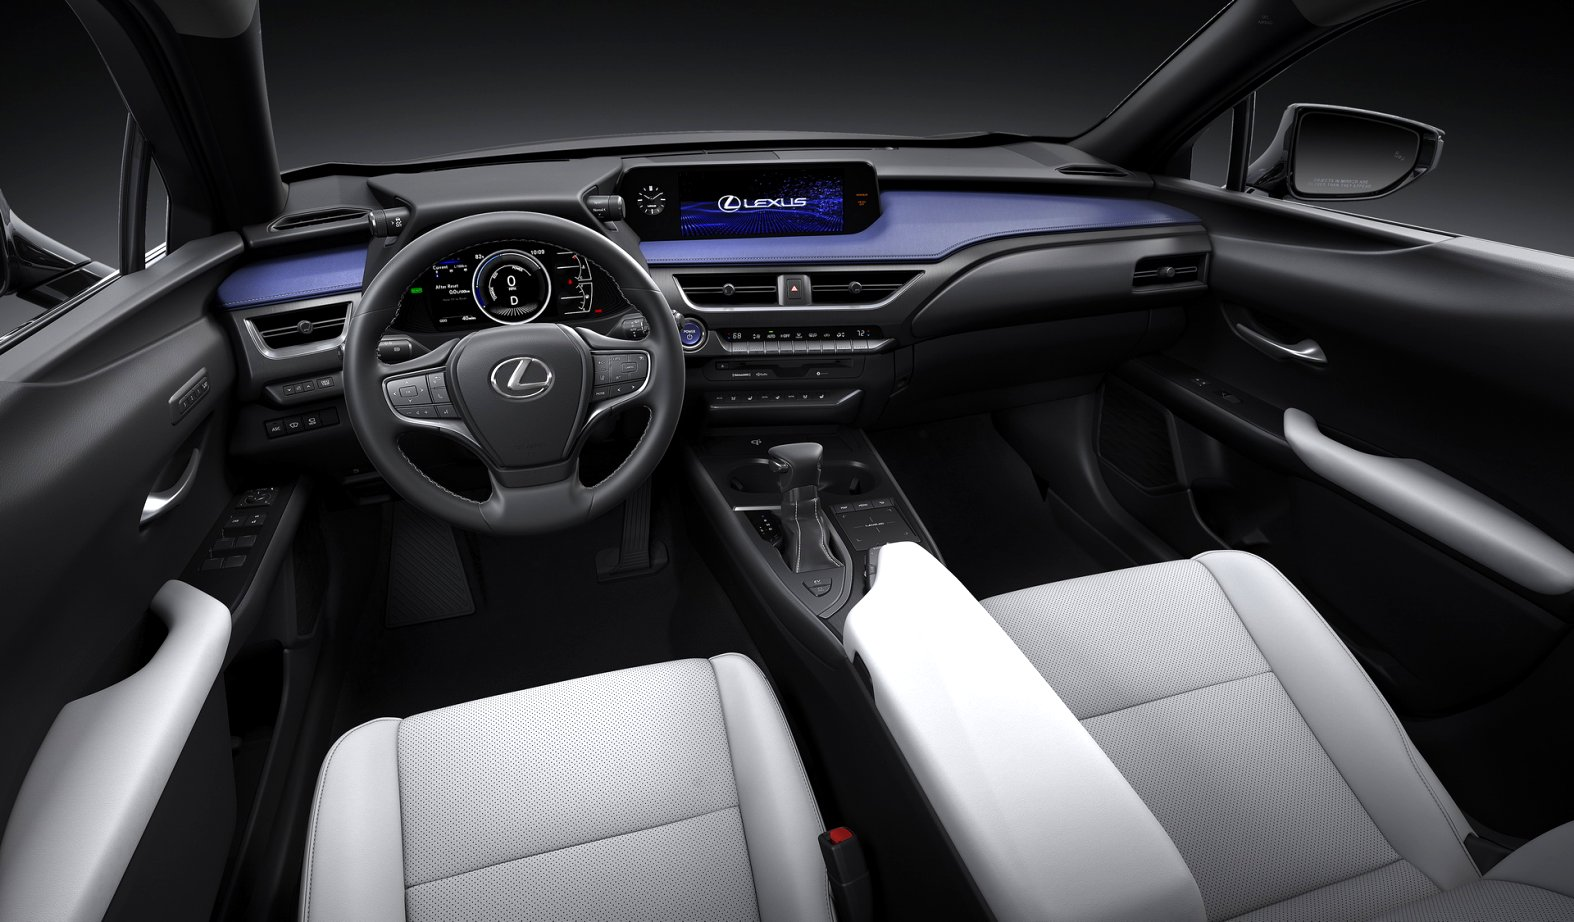 2020 lexus ux 250h luxury Price and Release date